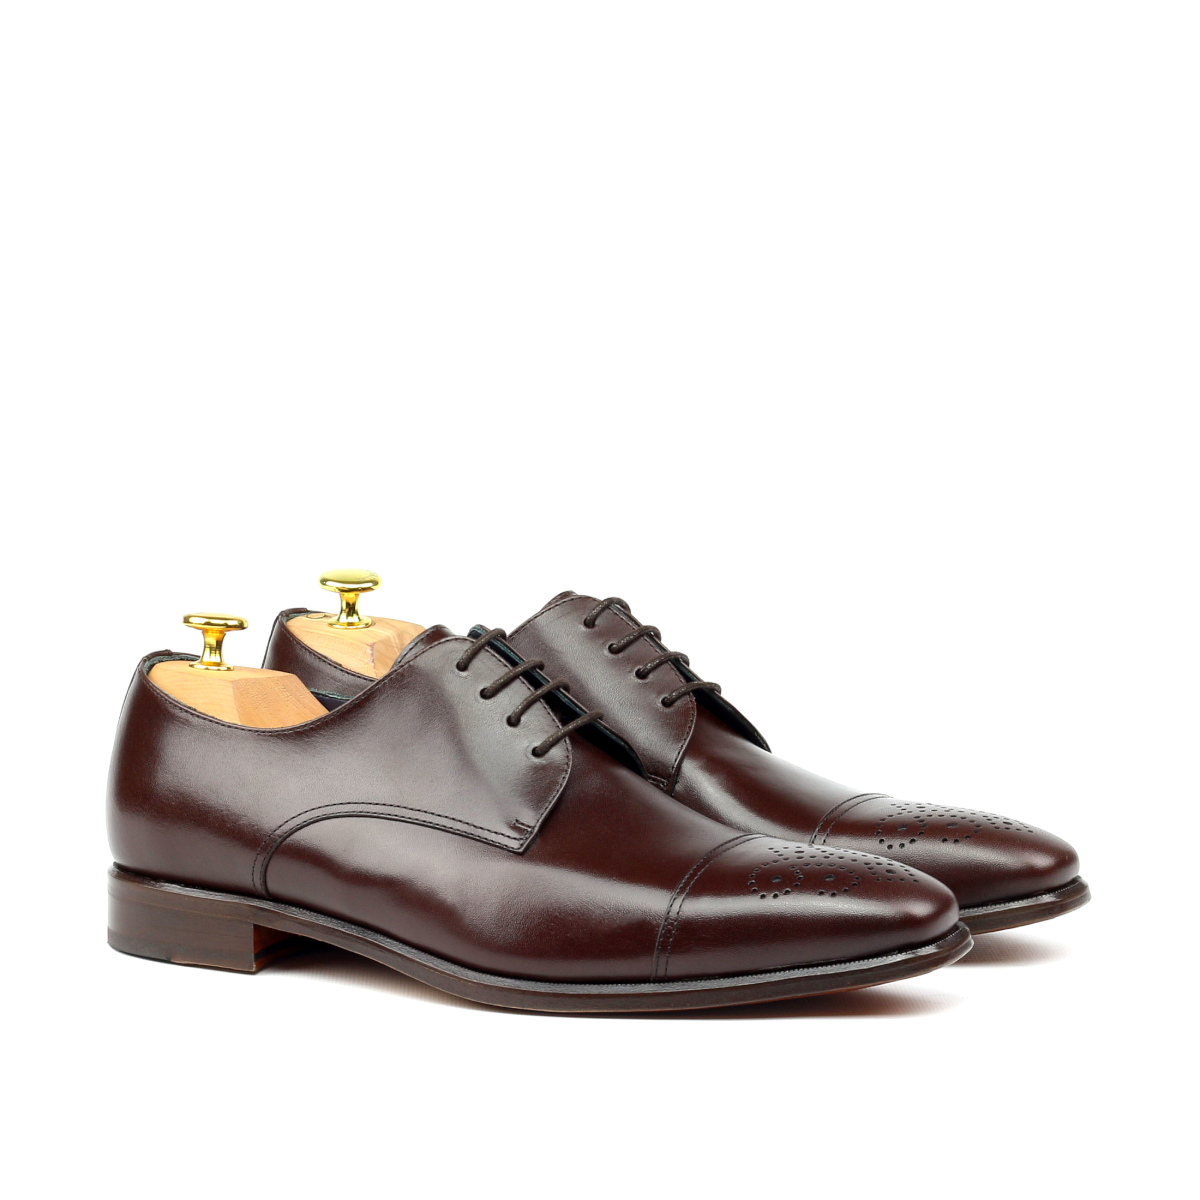 Brown punched cap toe derby